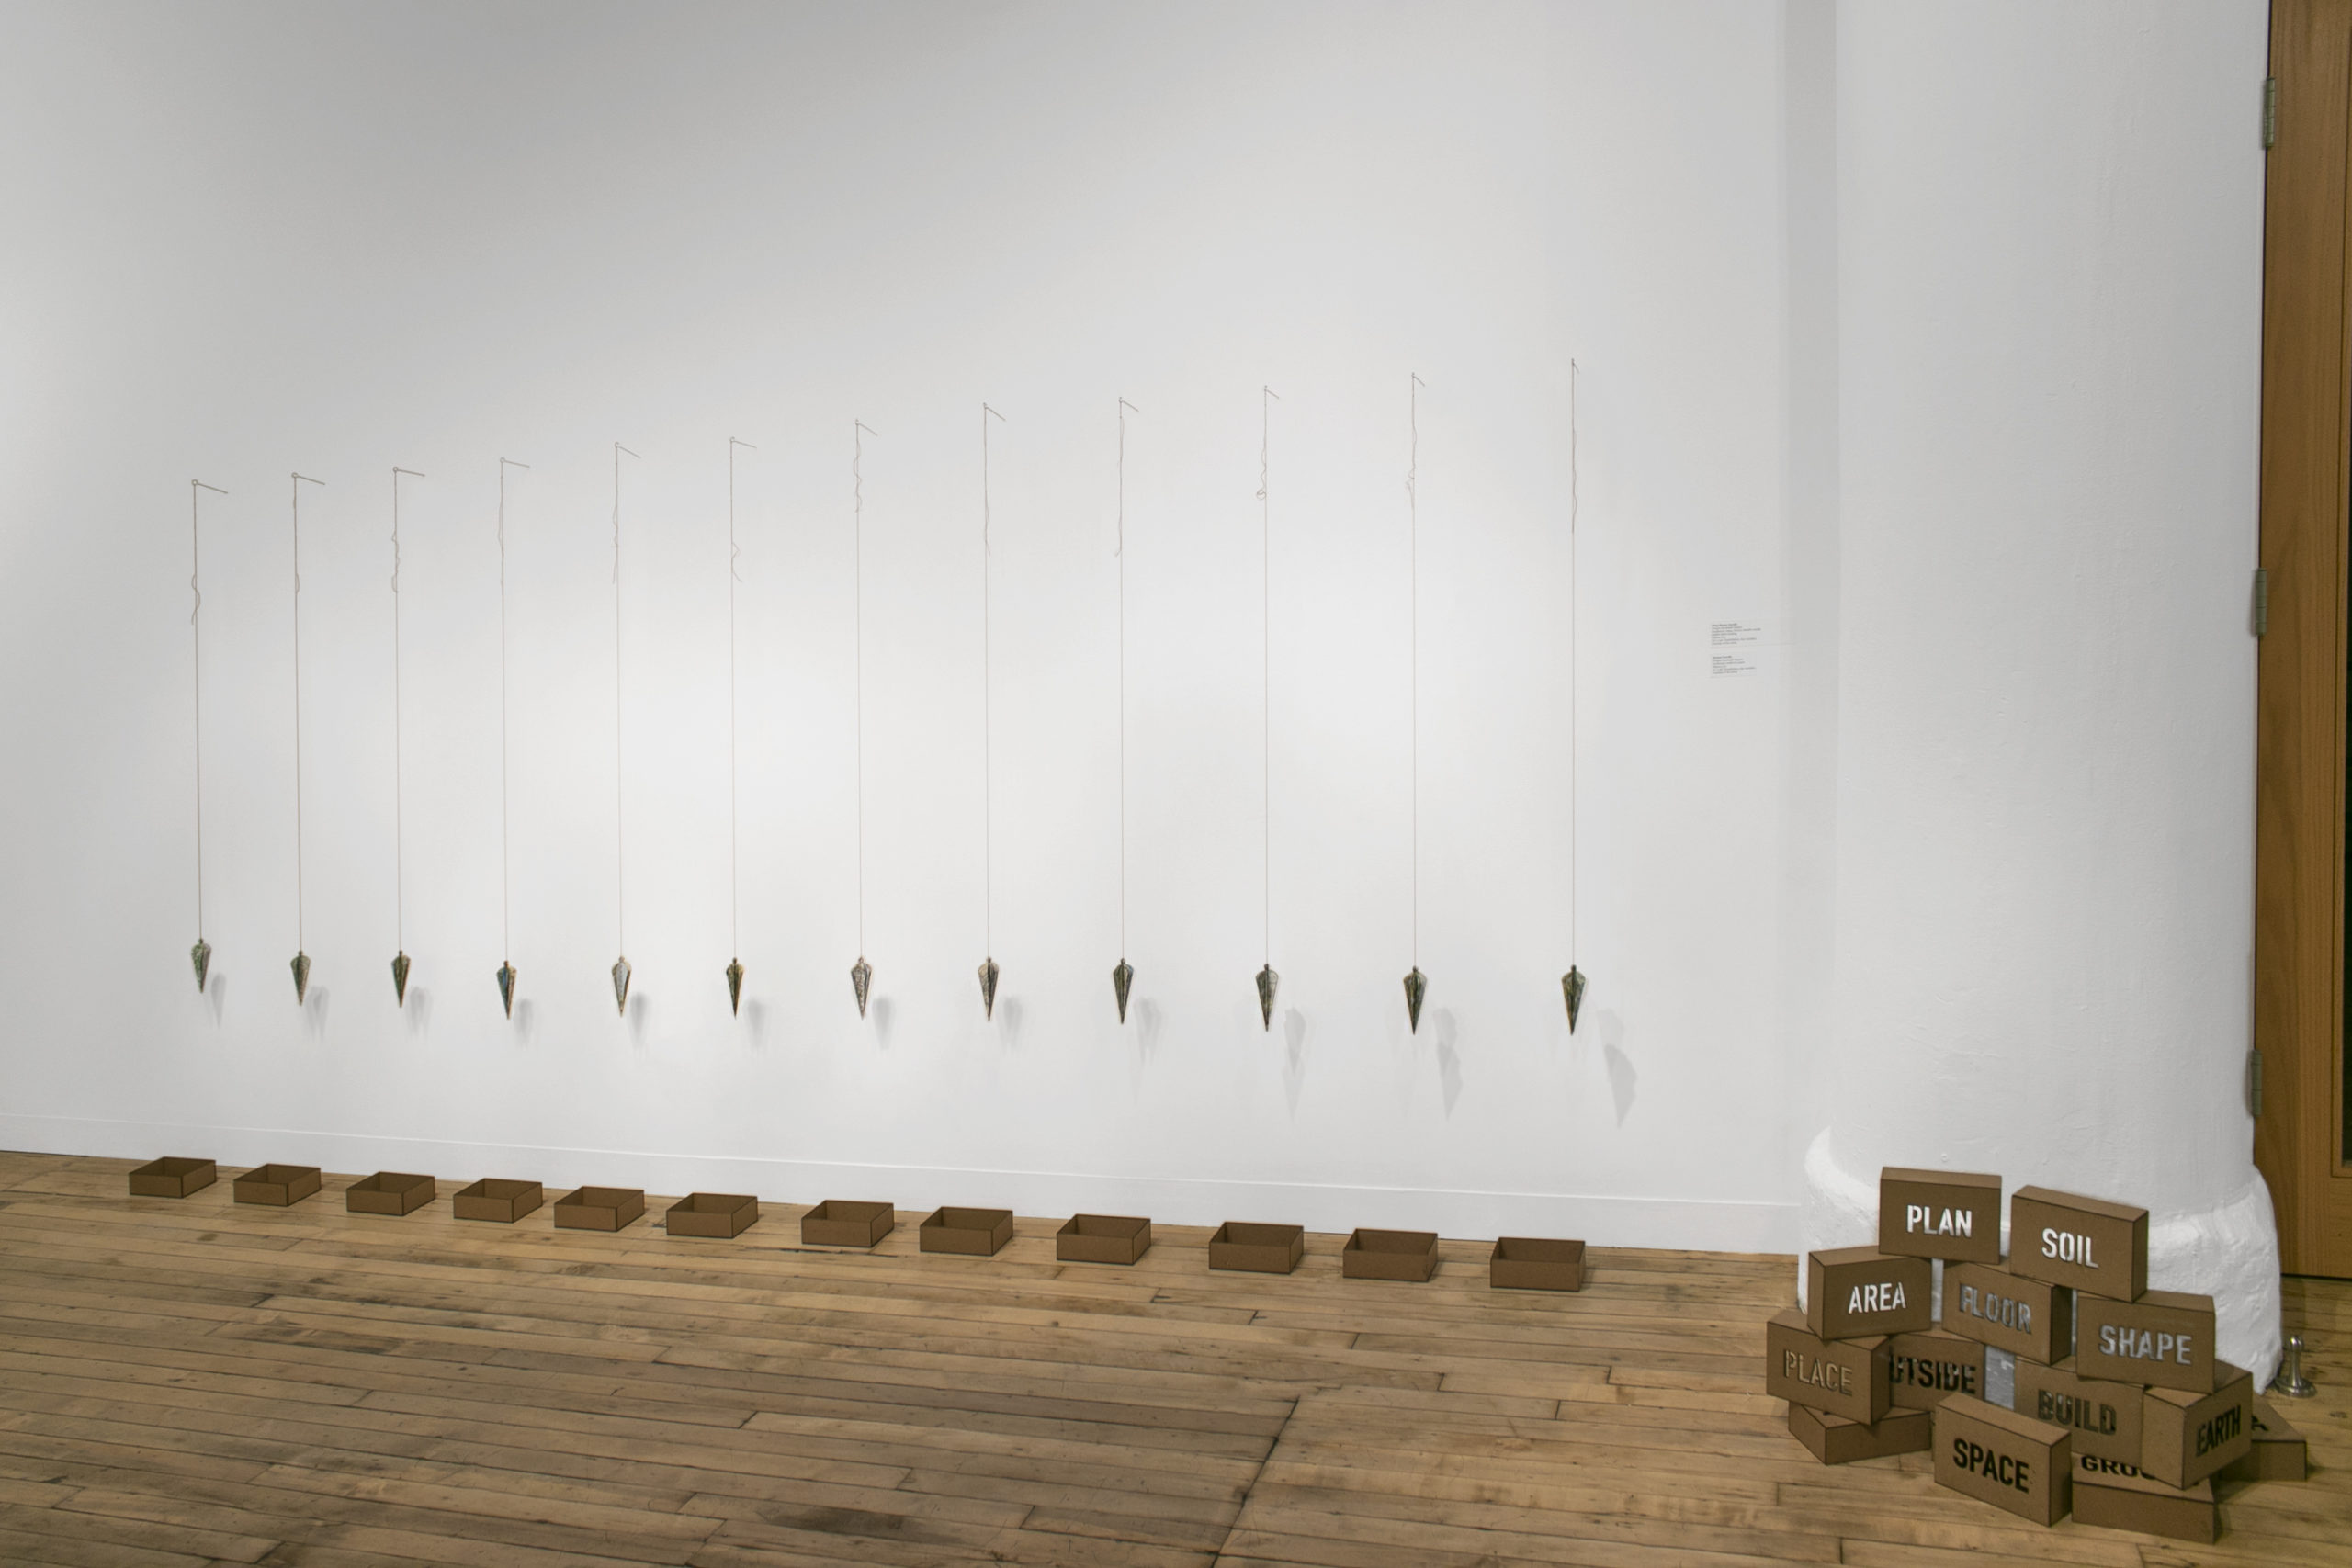 Installation of Viviane Rombaldi Seppey's artwork Way Home, a series of plumb-like books hanging from the wall